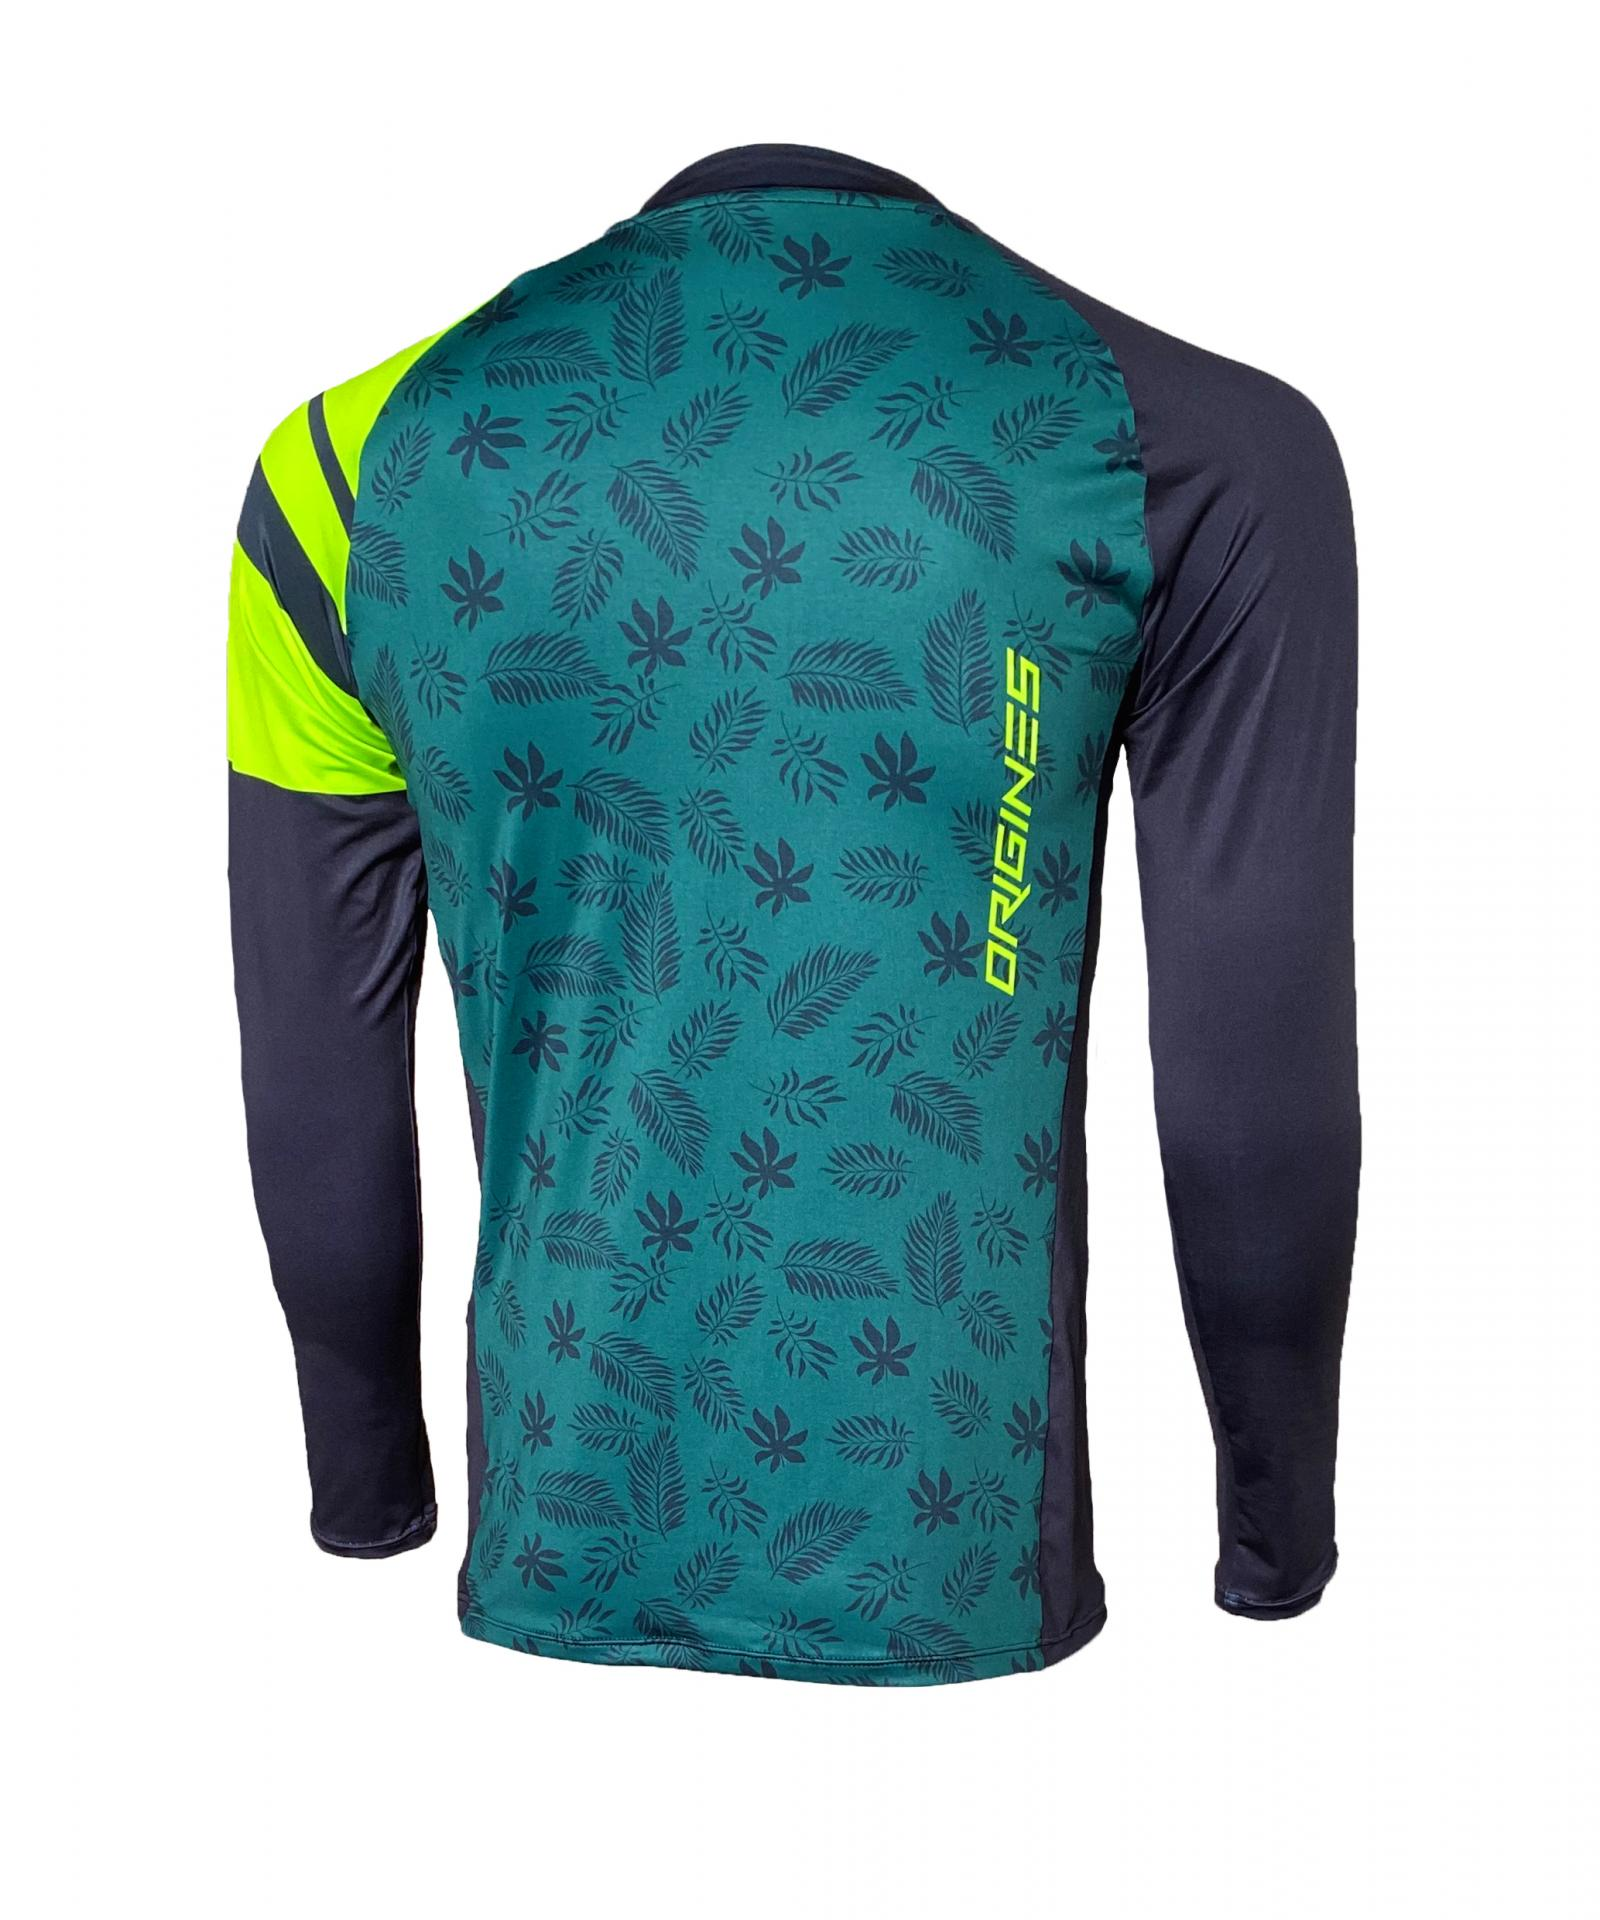 Jersey origines clothing enduro leaf back